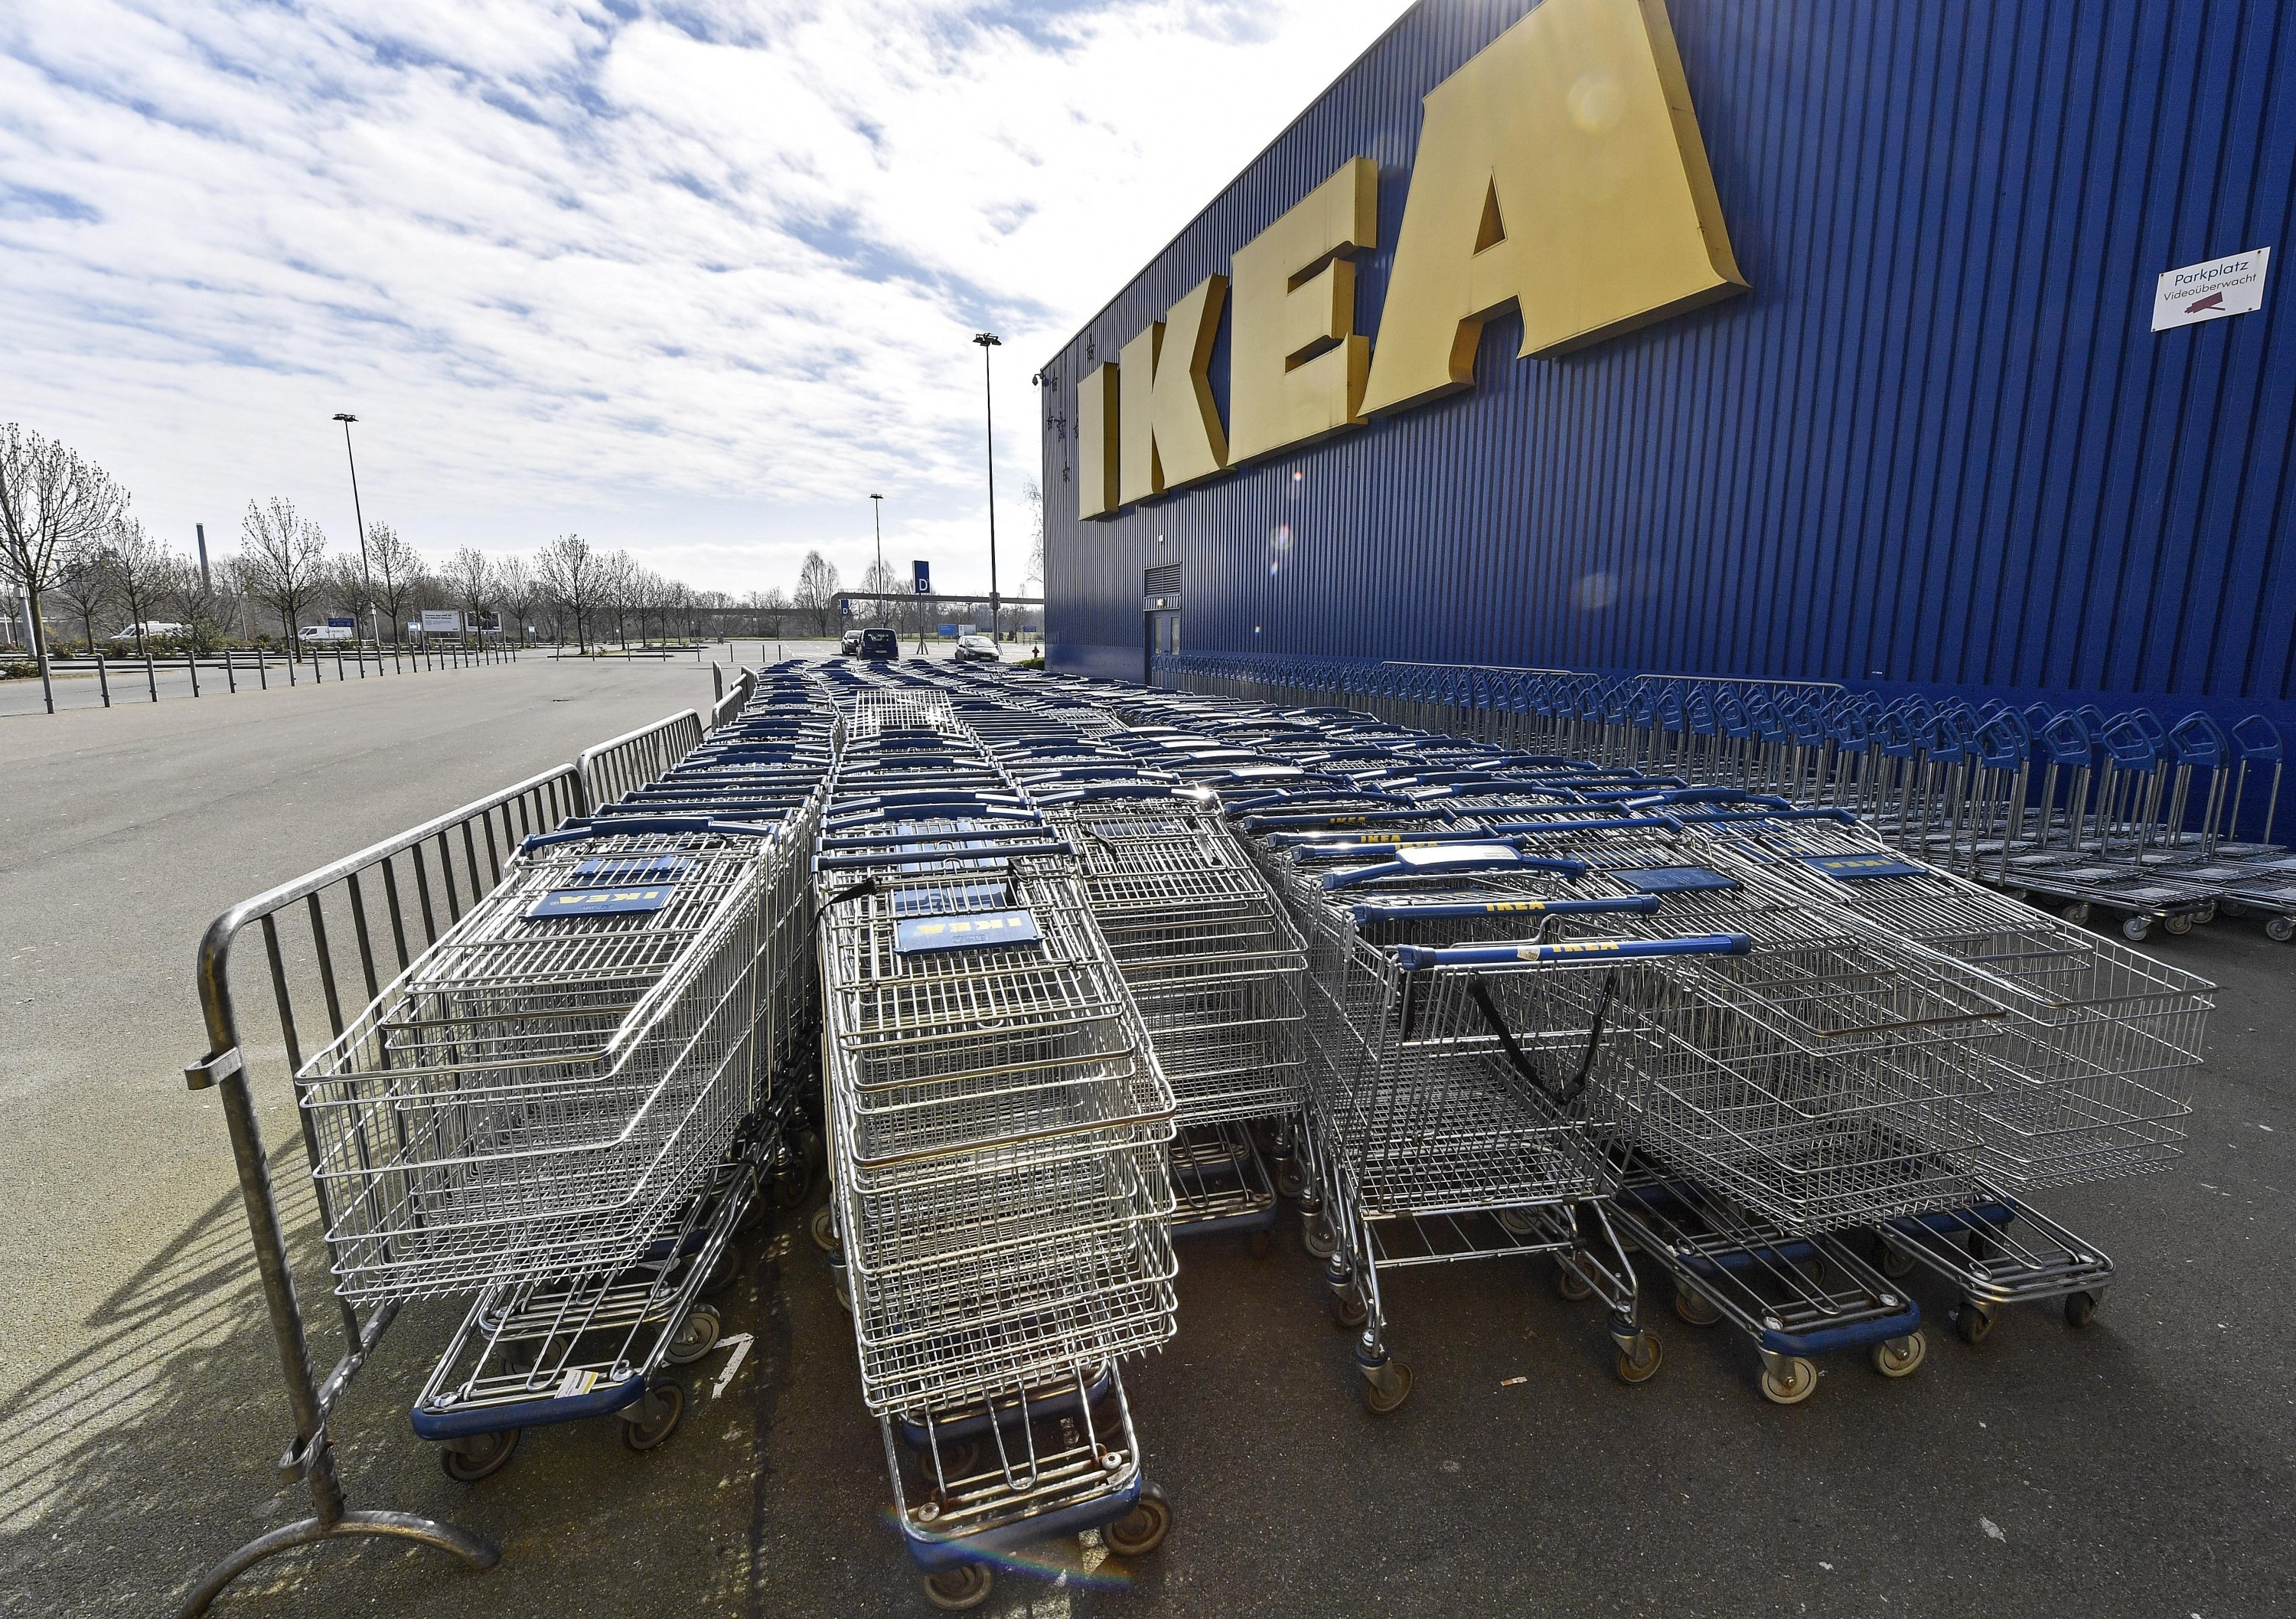 Ikea Front Ikea To Open Used Furniture Store In Sweden | Daily Sabah